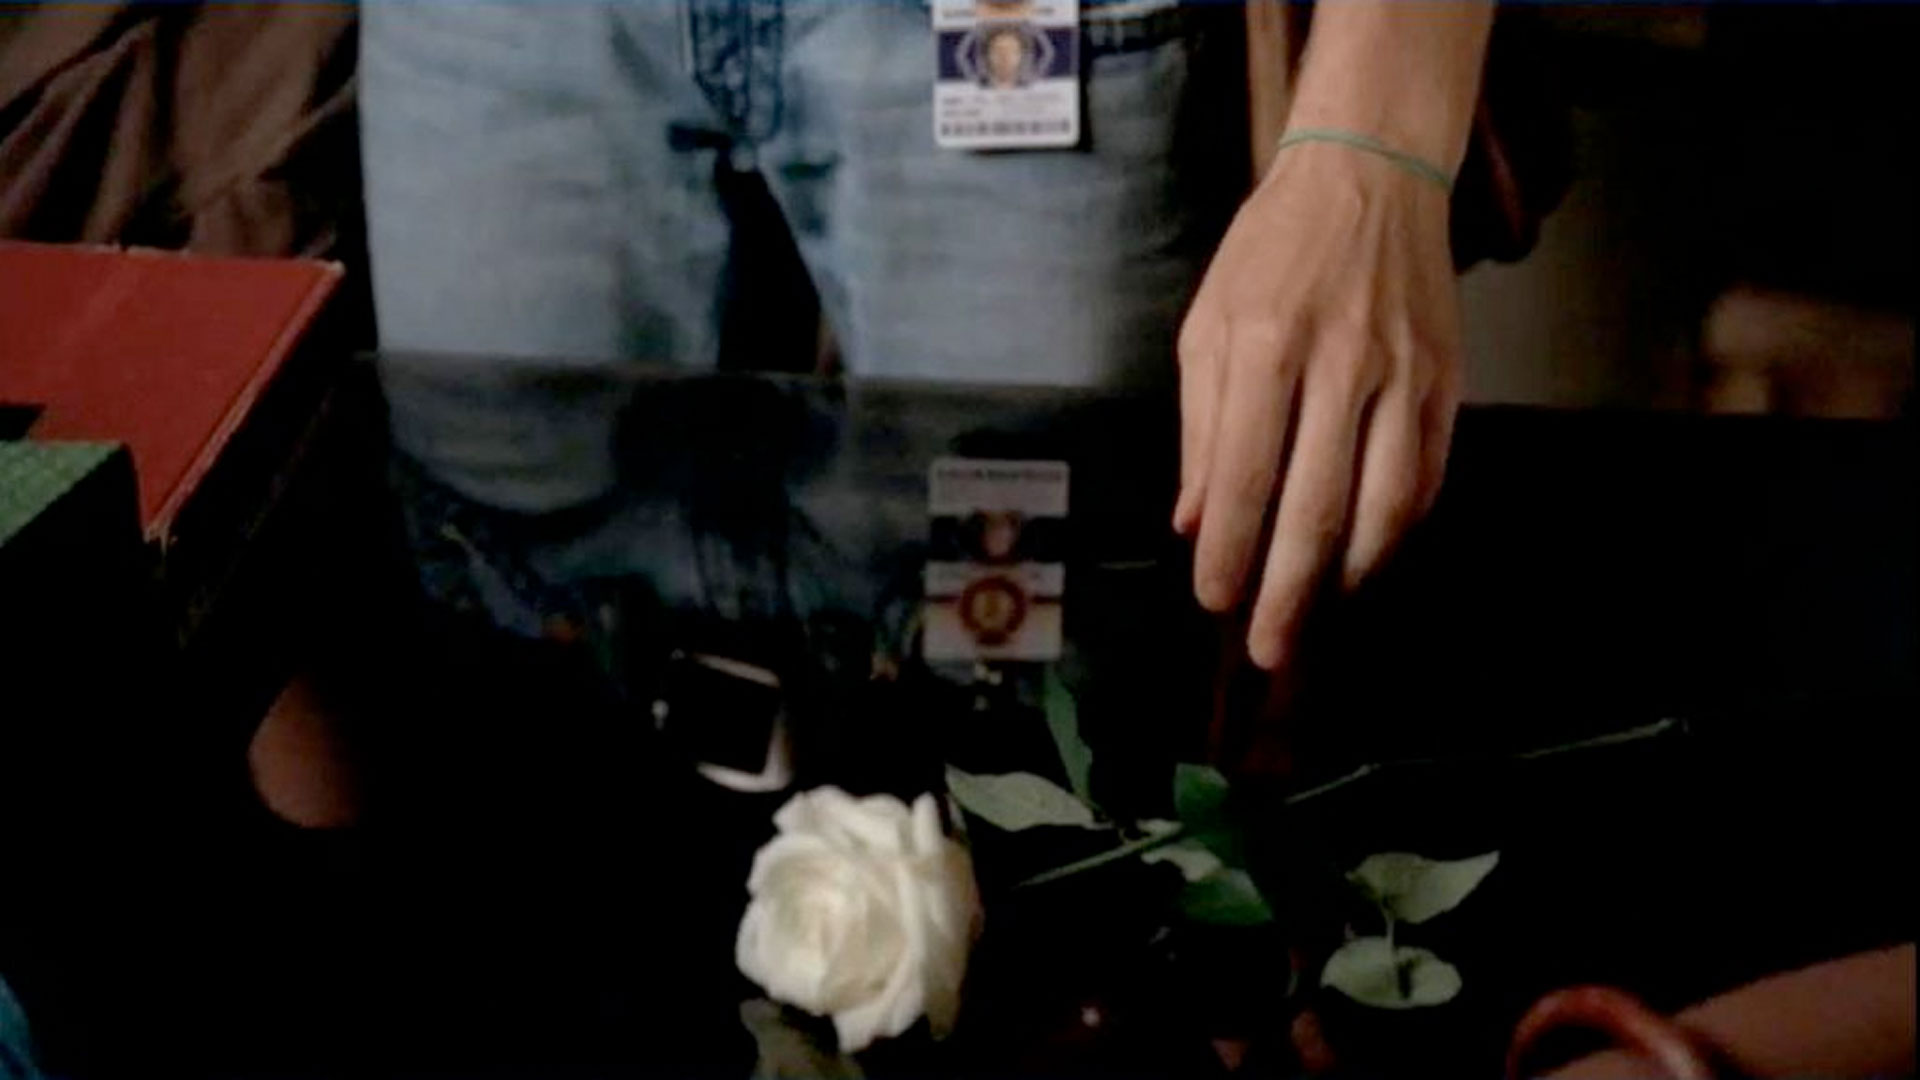 TJ Thyne in Bones episode 2x03 The Boy in the Shroud, as character Jack Hodgins with a white rose